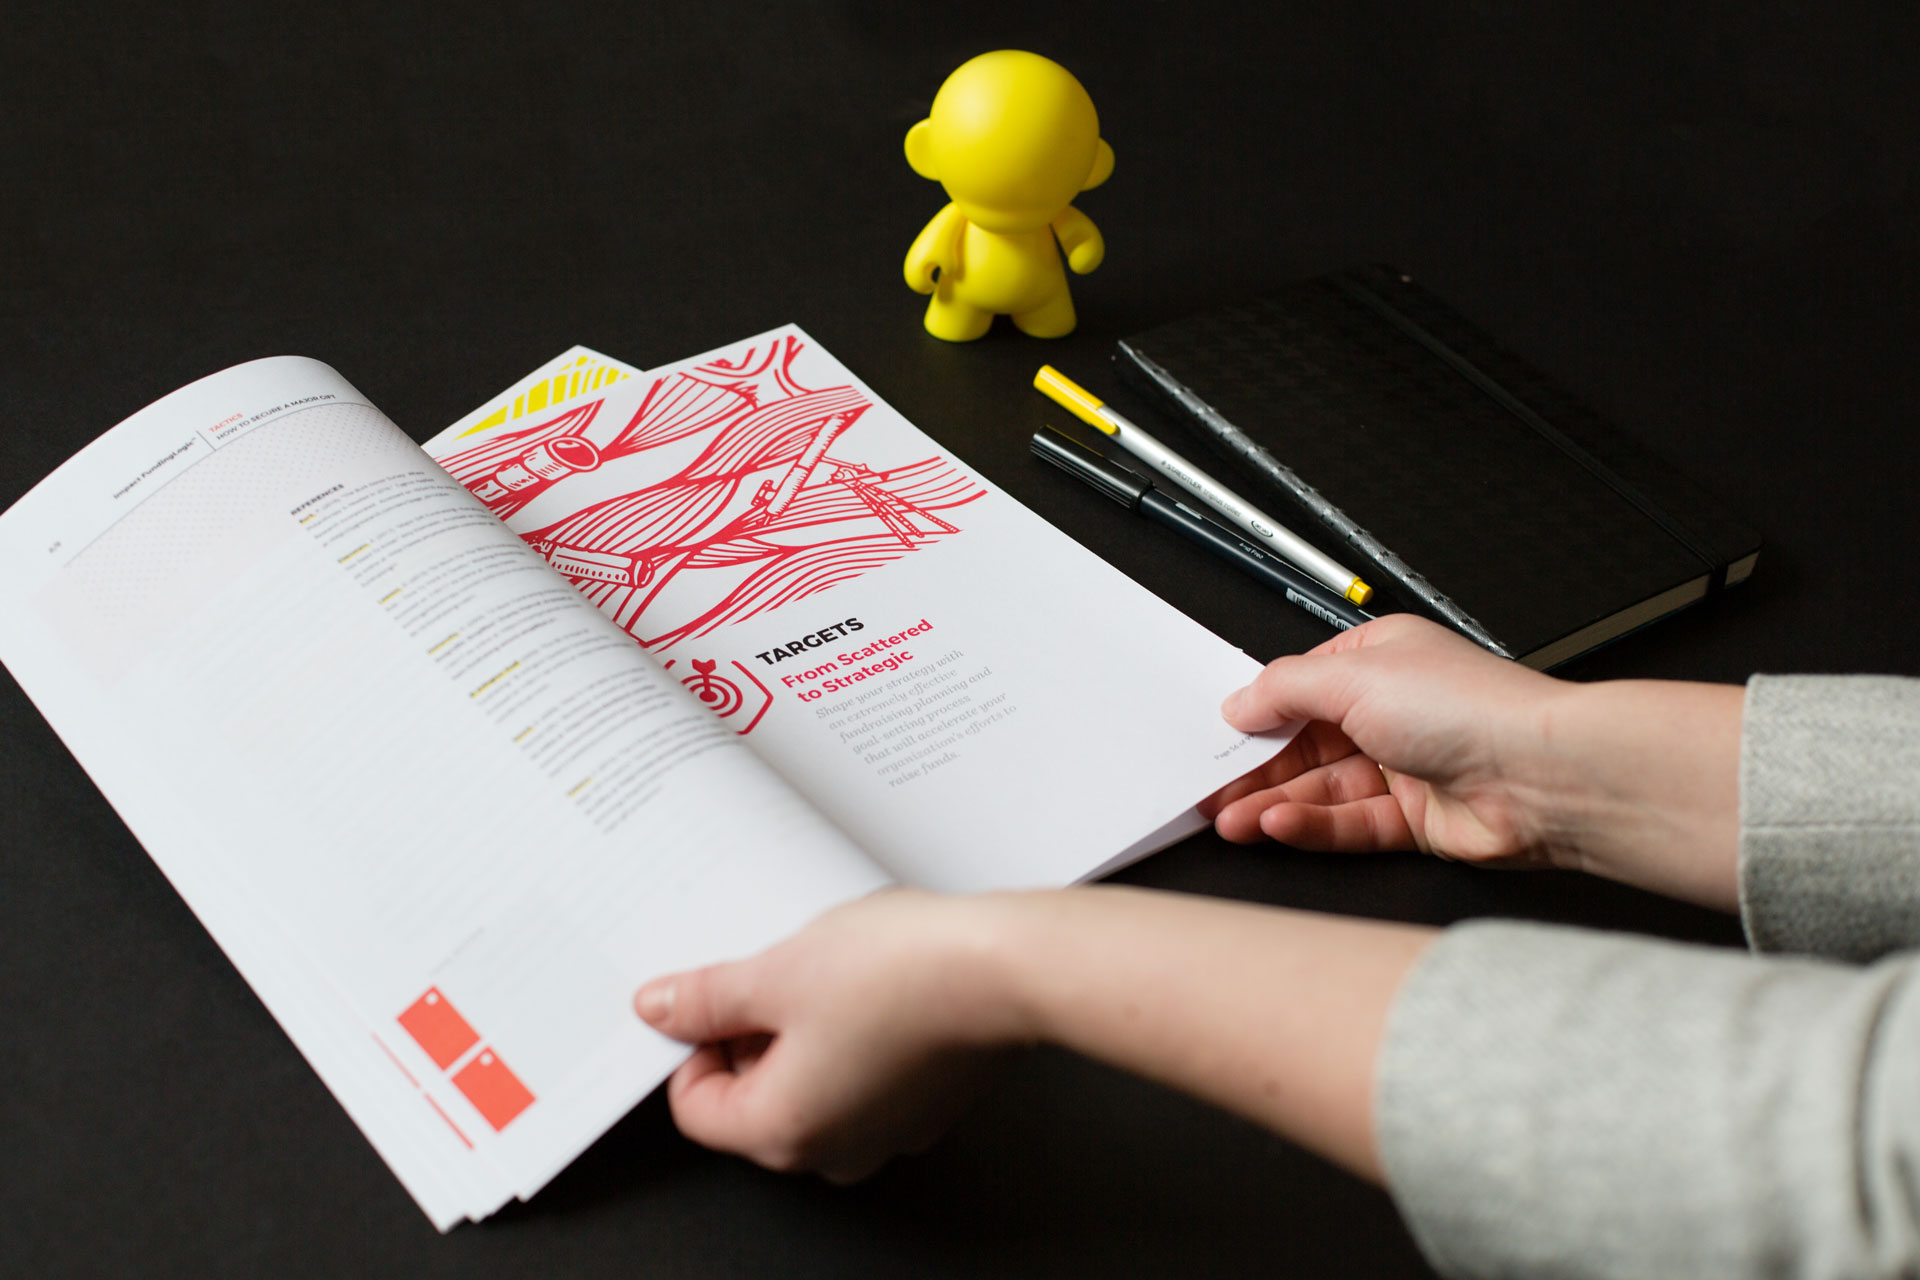 Two hands holding printed materials open next to pens and a yellow munny figurine on a black background